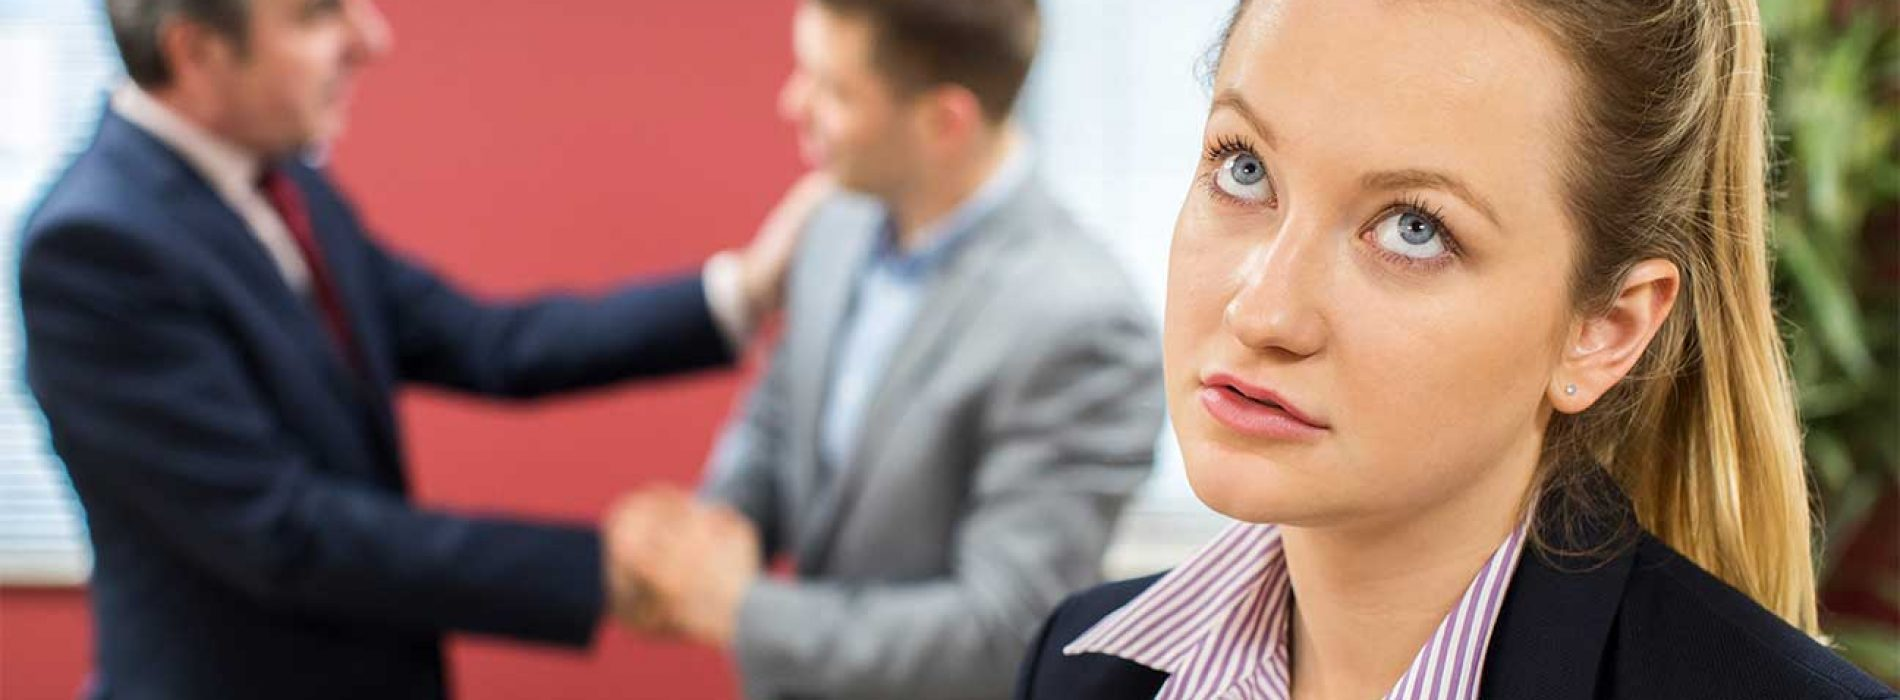 Four Things to Do When Facing Possible Pregnancy Discrimination at Work